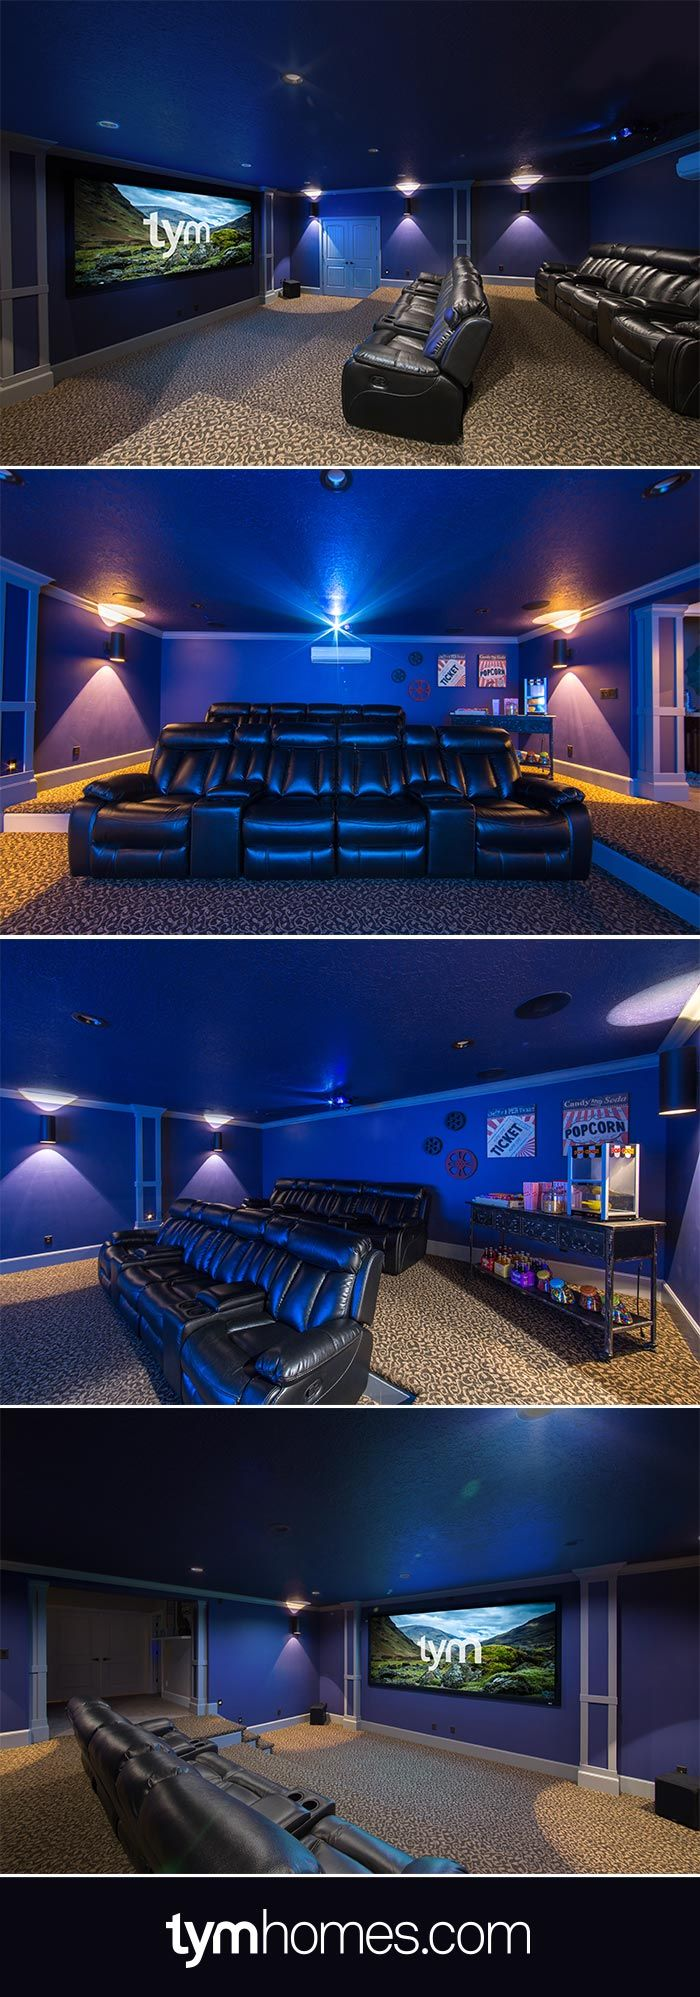 This Home Cinema was installed in a basement - under the garage. It features an anamorphic, acoustically transparent widescreen, Wolf Cinema projector, 7.1 surround sound system with Anthem A/V receiver and Paradigm speakers. A Savant SmartView video tiling system plays up to 9 video sources at the same time in variable configurations. The cinema is controlled by Savant. Learn more at TYMhomes.com. #HomeCinema #HomeTheater #MediaRoom